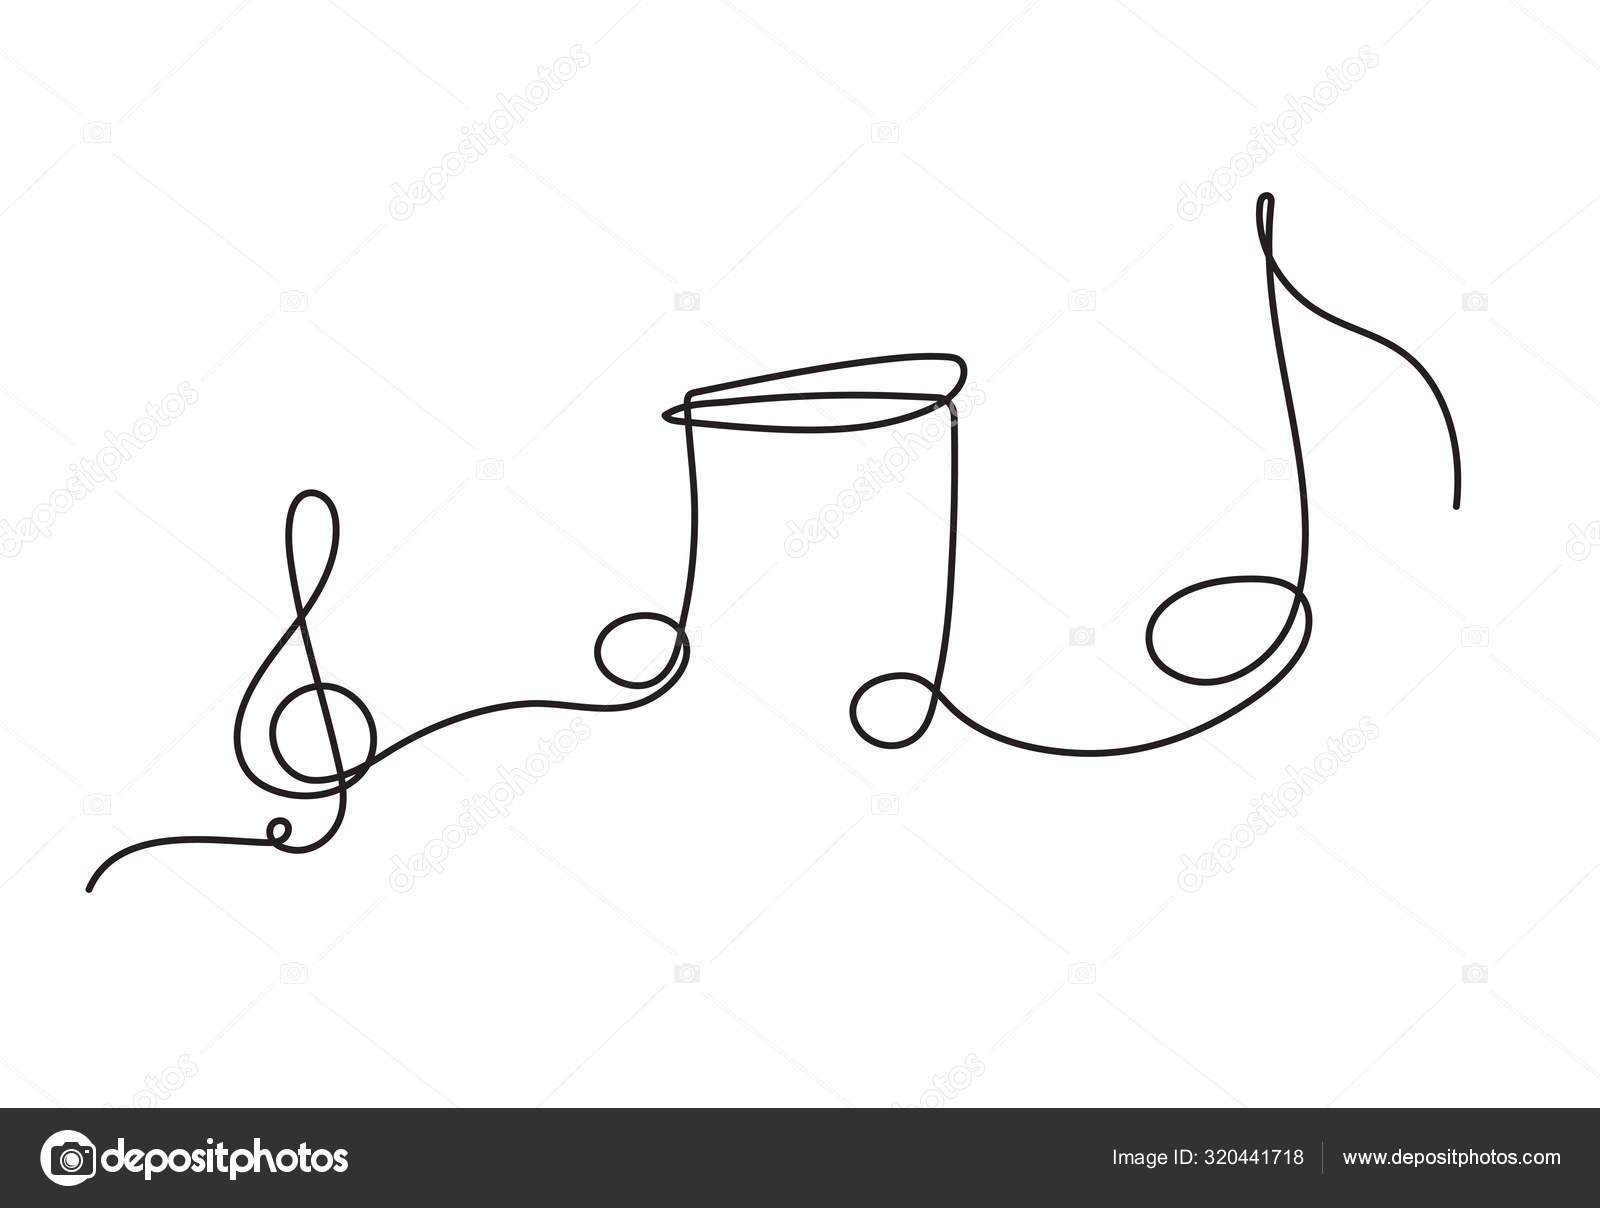 One Line Drawing Music Notes Isolated Vector Object Continuous Simplicity Stock Vector C Annmaneeta 320441718